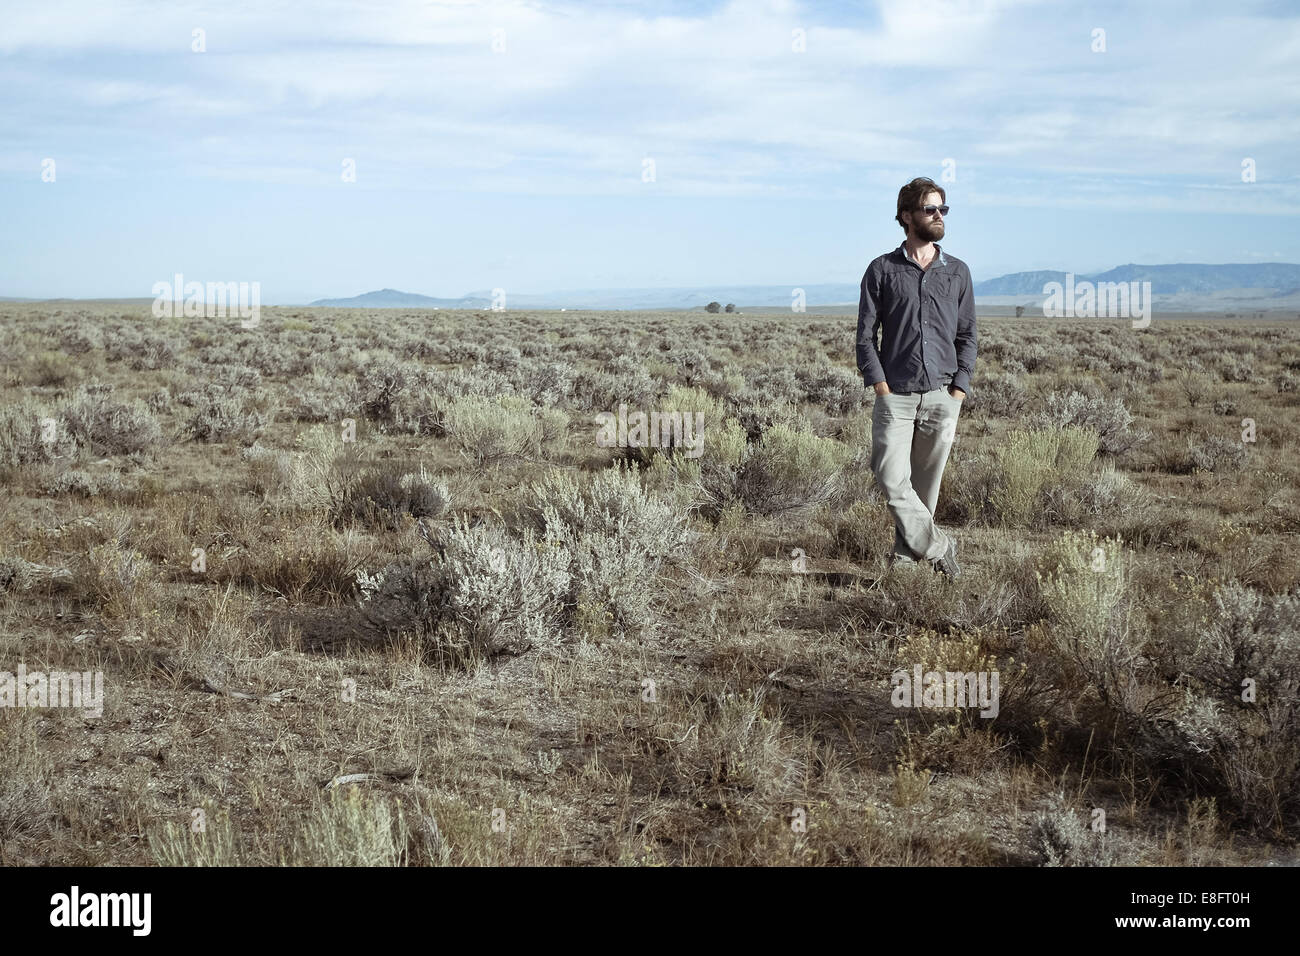 USA, Man standing in sagebrush Stock Photo